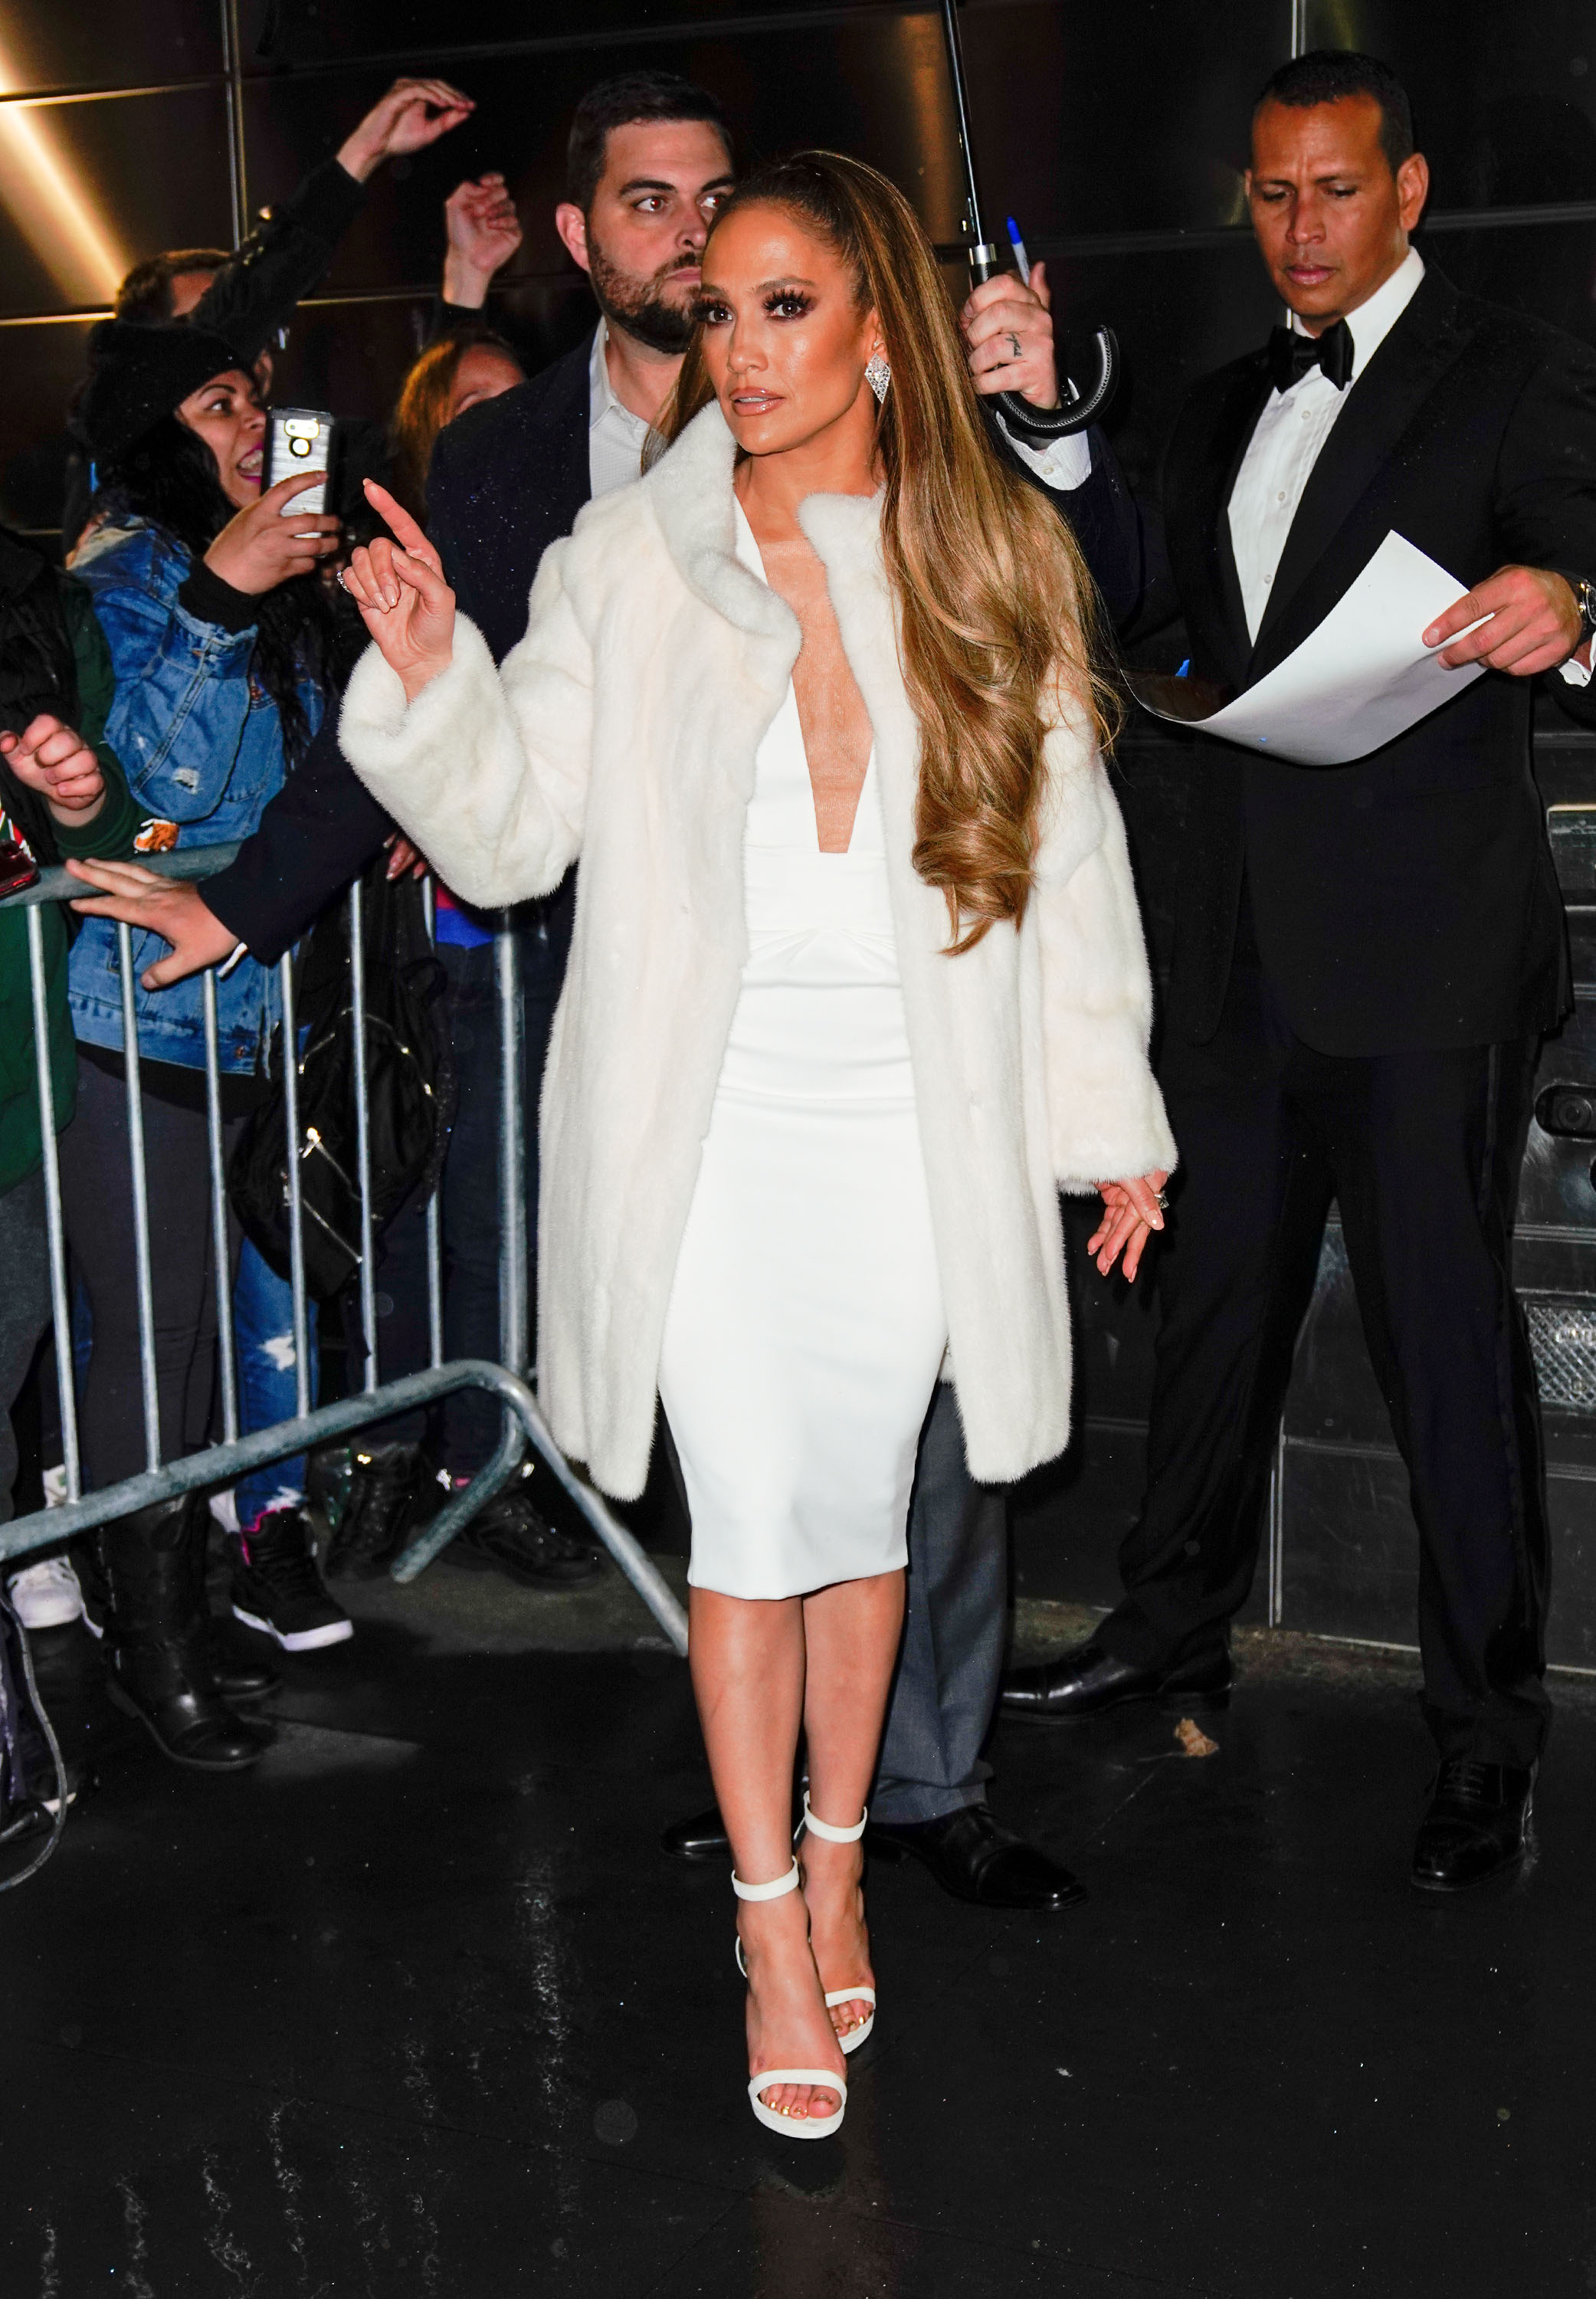 Jennifer Lopez and Alex Rodriguez depart the Time 100 gala at Time Warner Building in New York <P> Pictured: Jennifer Lopez,Alex Rodriguez <B>Ref: SPL1687429  250418  </B><BR/> Picture by: Jackson Lee / Splash News<BR/> </P><P> <B>Splash News and Pictures</B><BR/> Los Angeles:310-821-2666<BR/> New York:212-619-2666<BR/> London:870-934-2666<BR/> <span id=